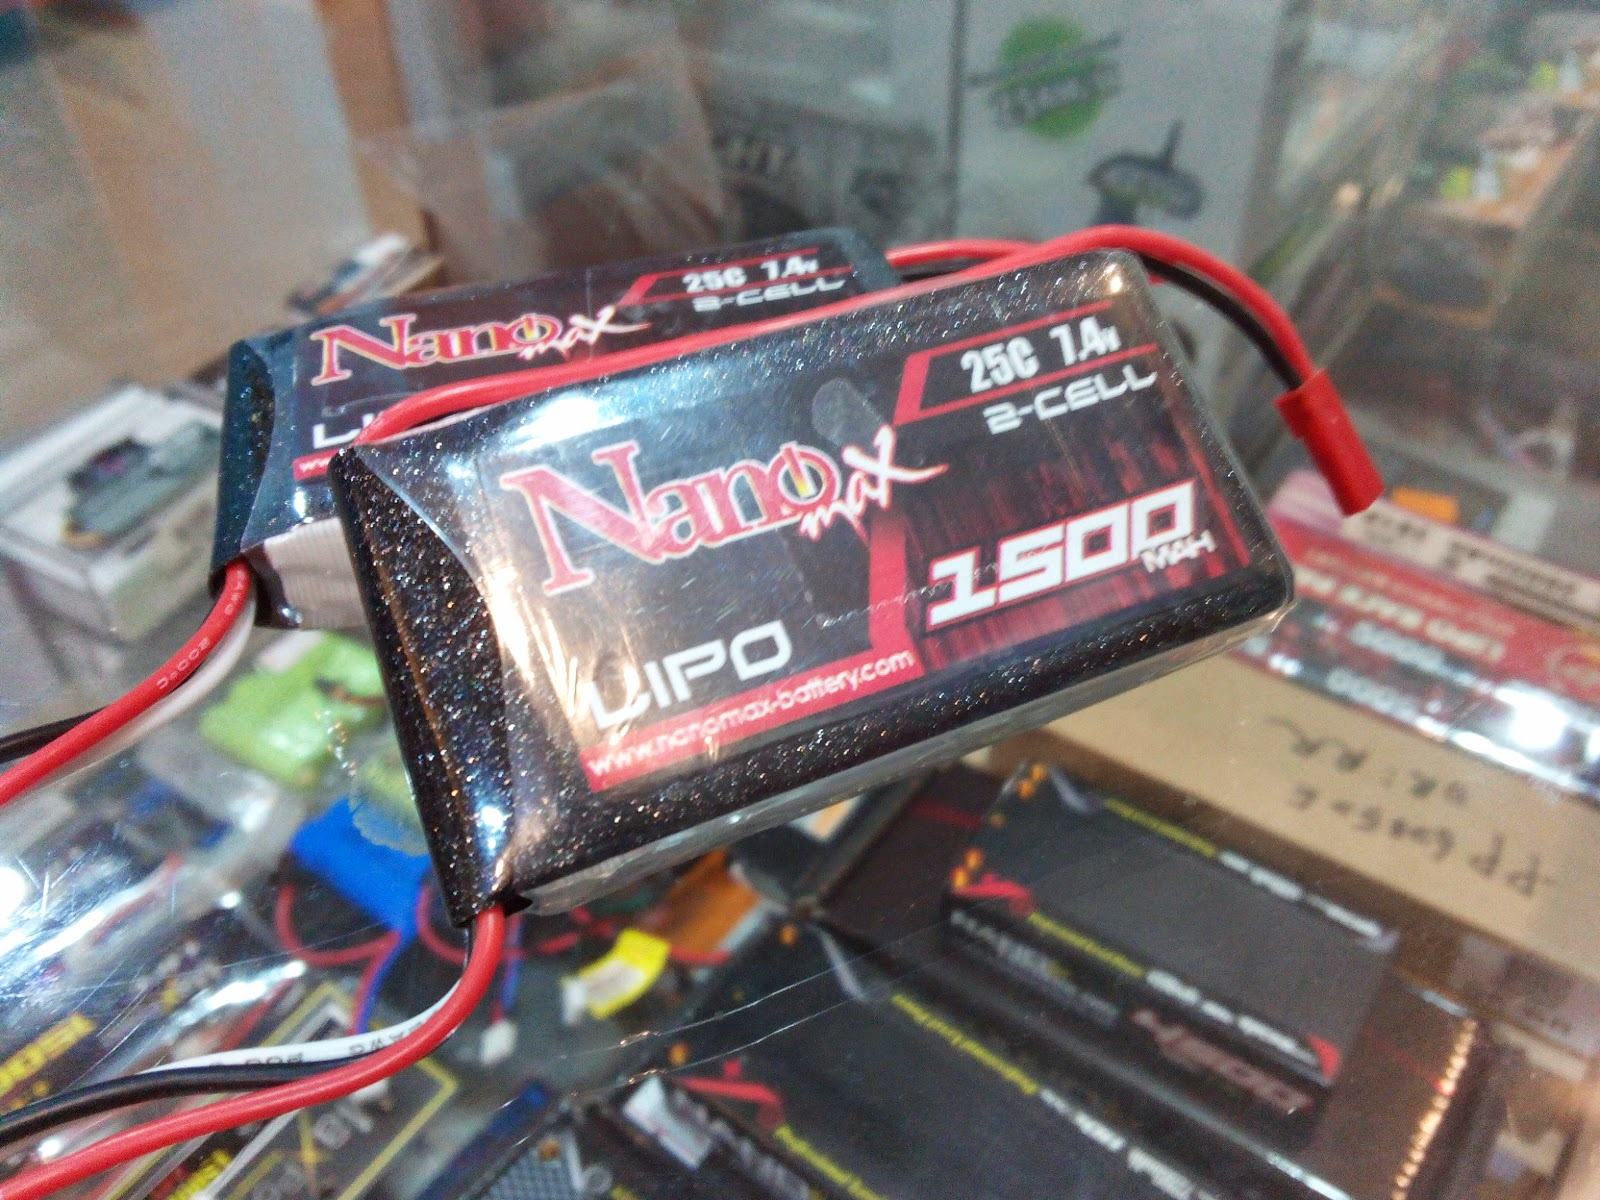 Xrc Hobby Blog Malaysia Nano Max Lipo Battery 2s 1500mah 25c Work With Prolux Charger This Balancer Can Be Used To 2 3